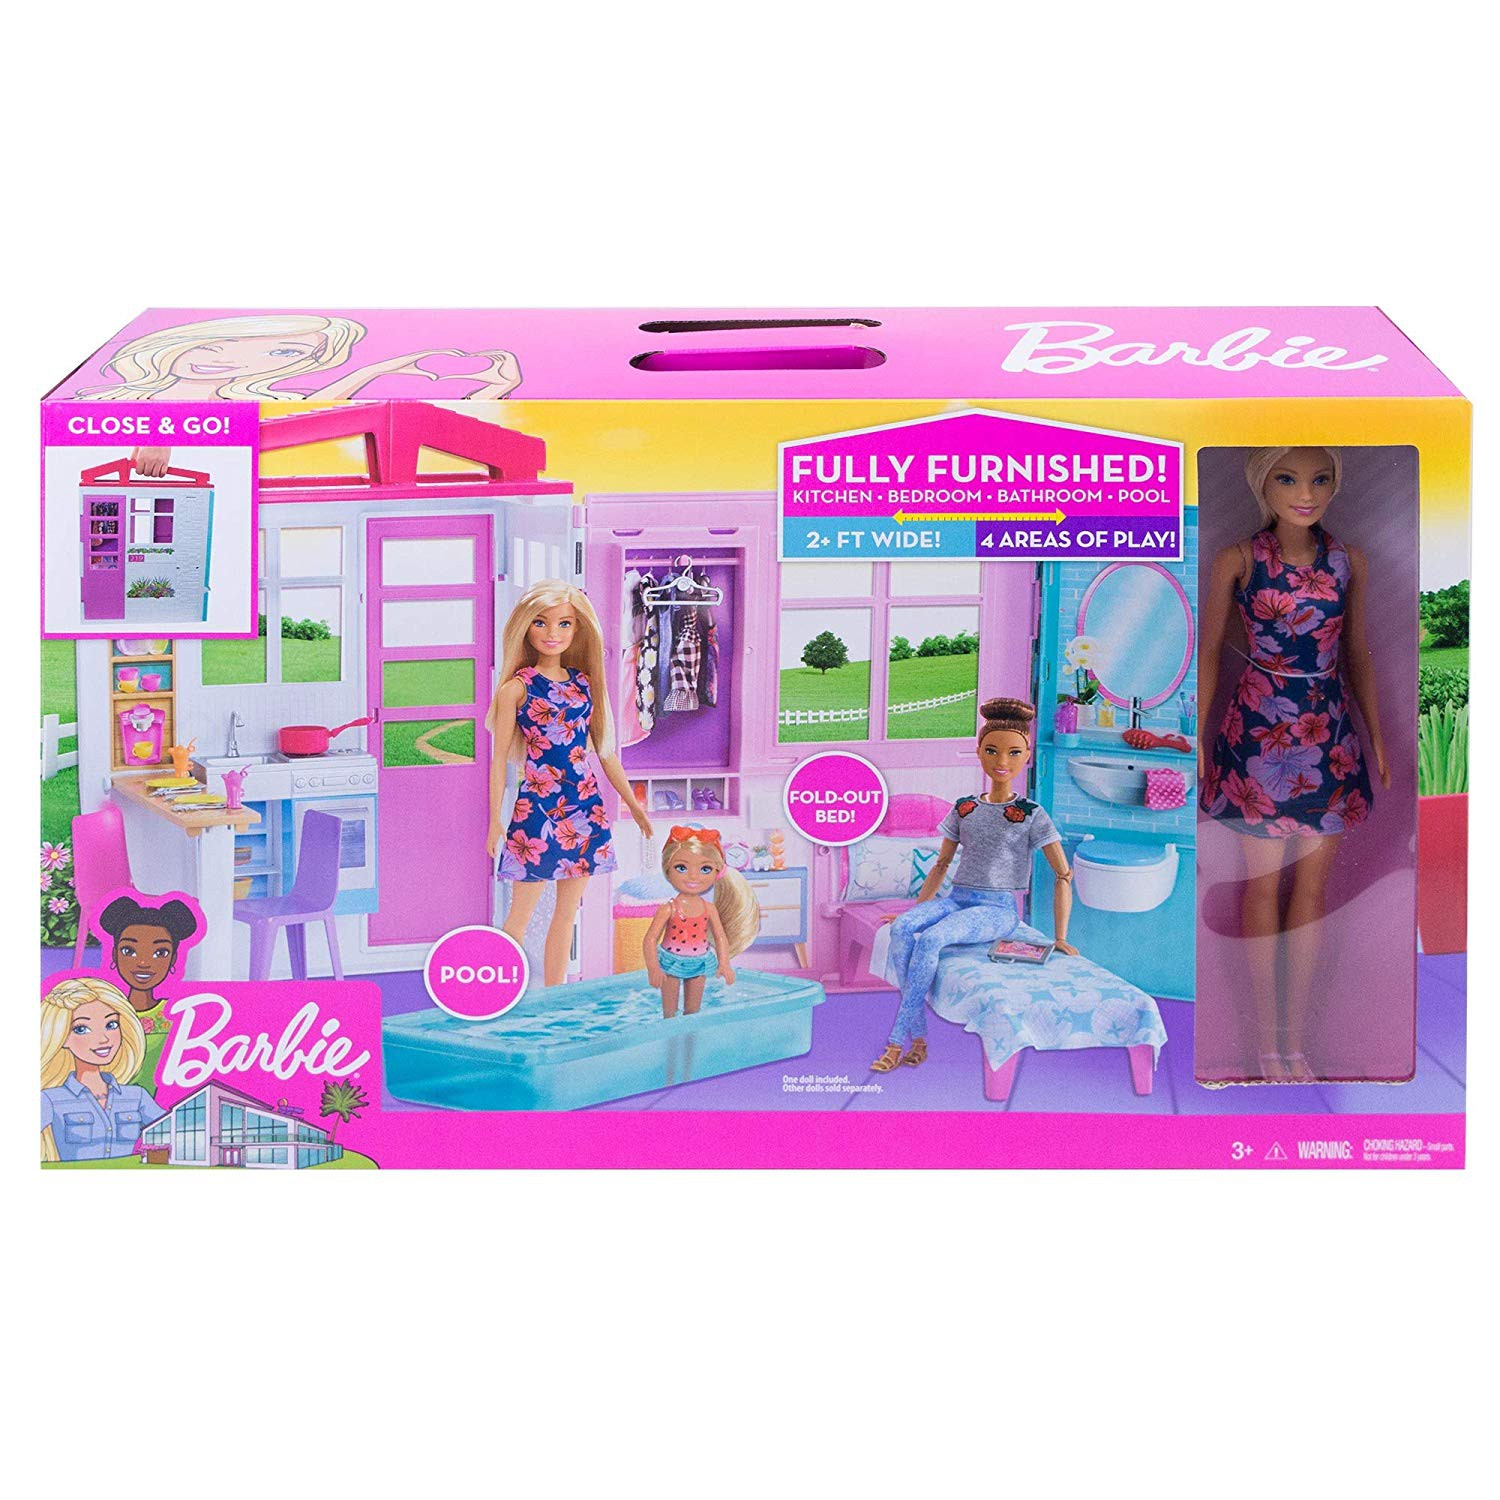 Barbie Fxg55 House And Doll